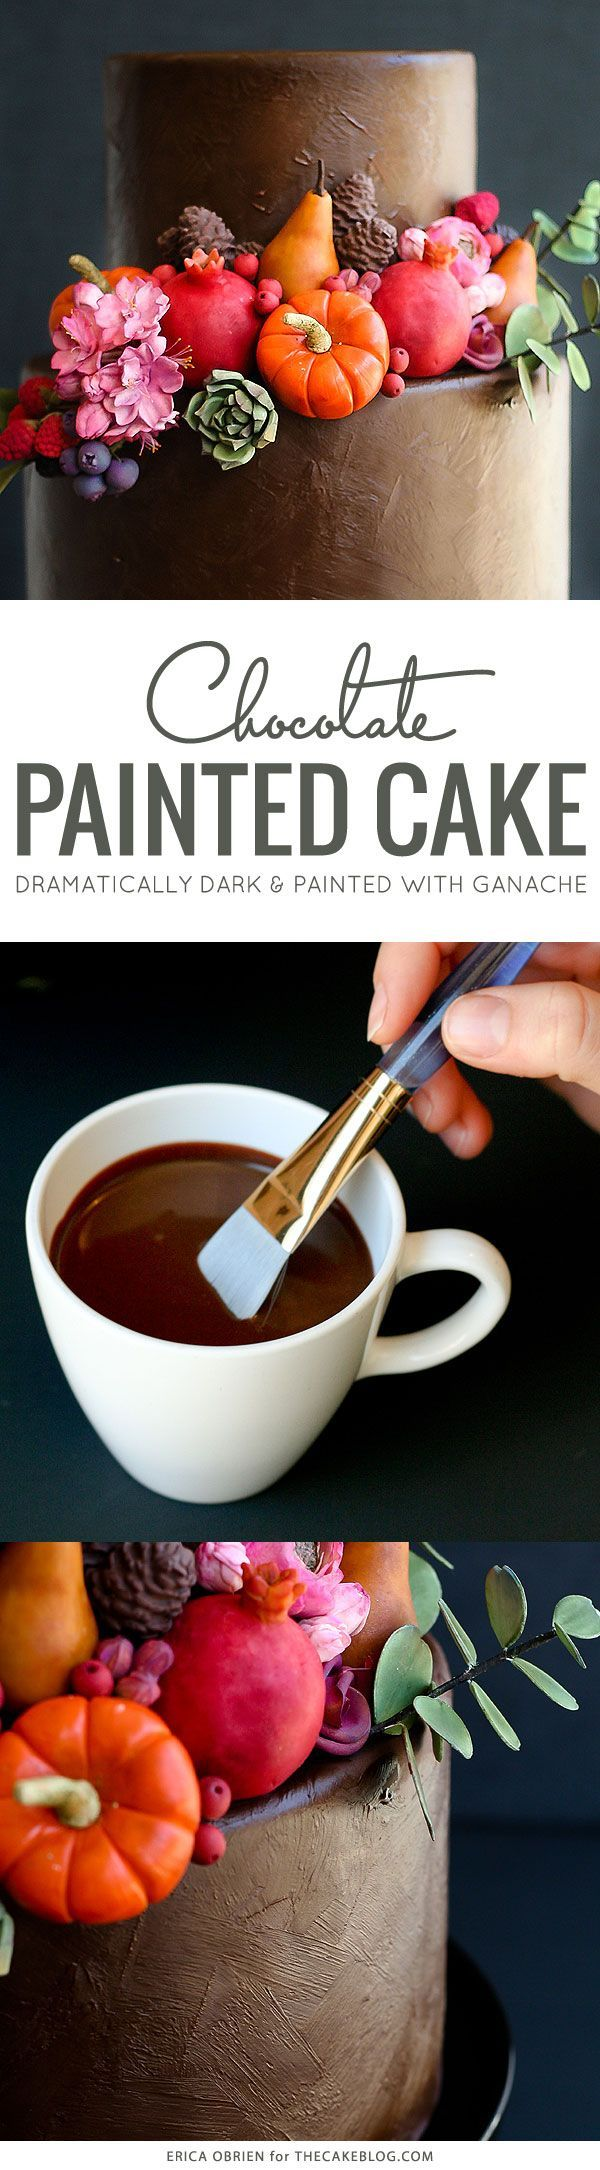 Chocolate Painted Cake  |  dramatically dark fall cake inspiration and how-to | by Erica OBrien for TheCakeBlog.com